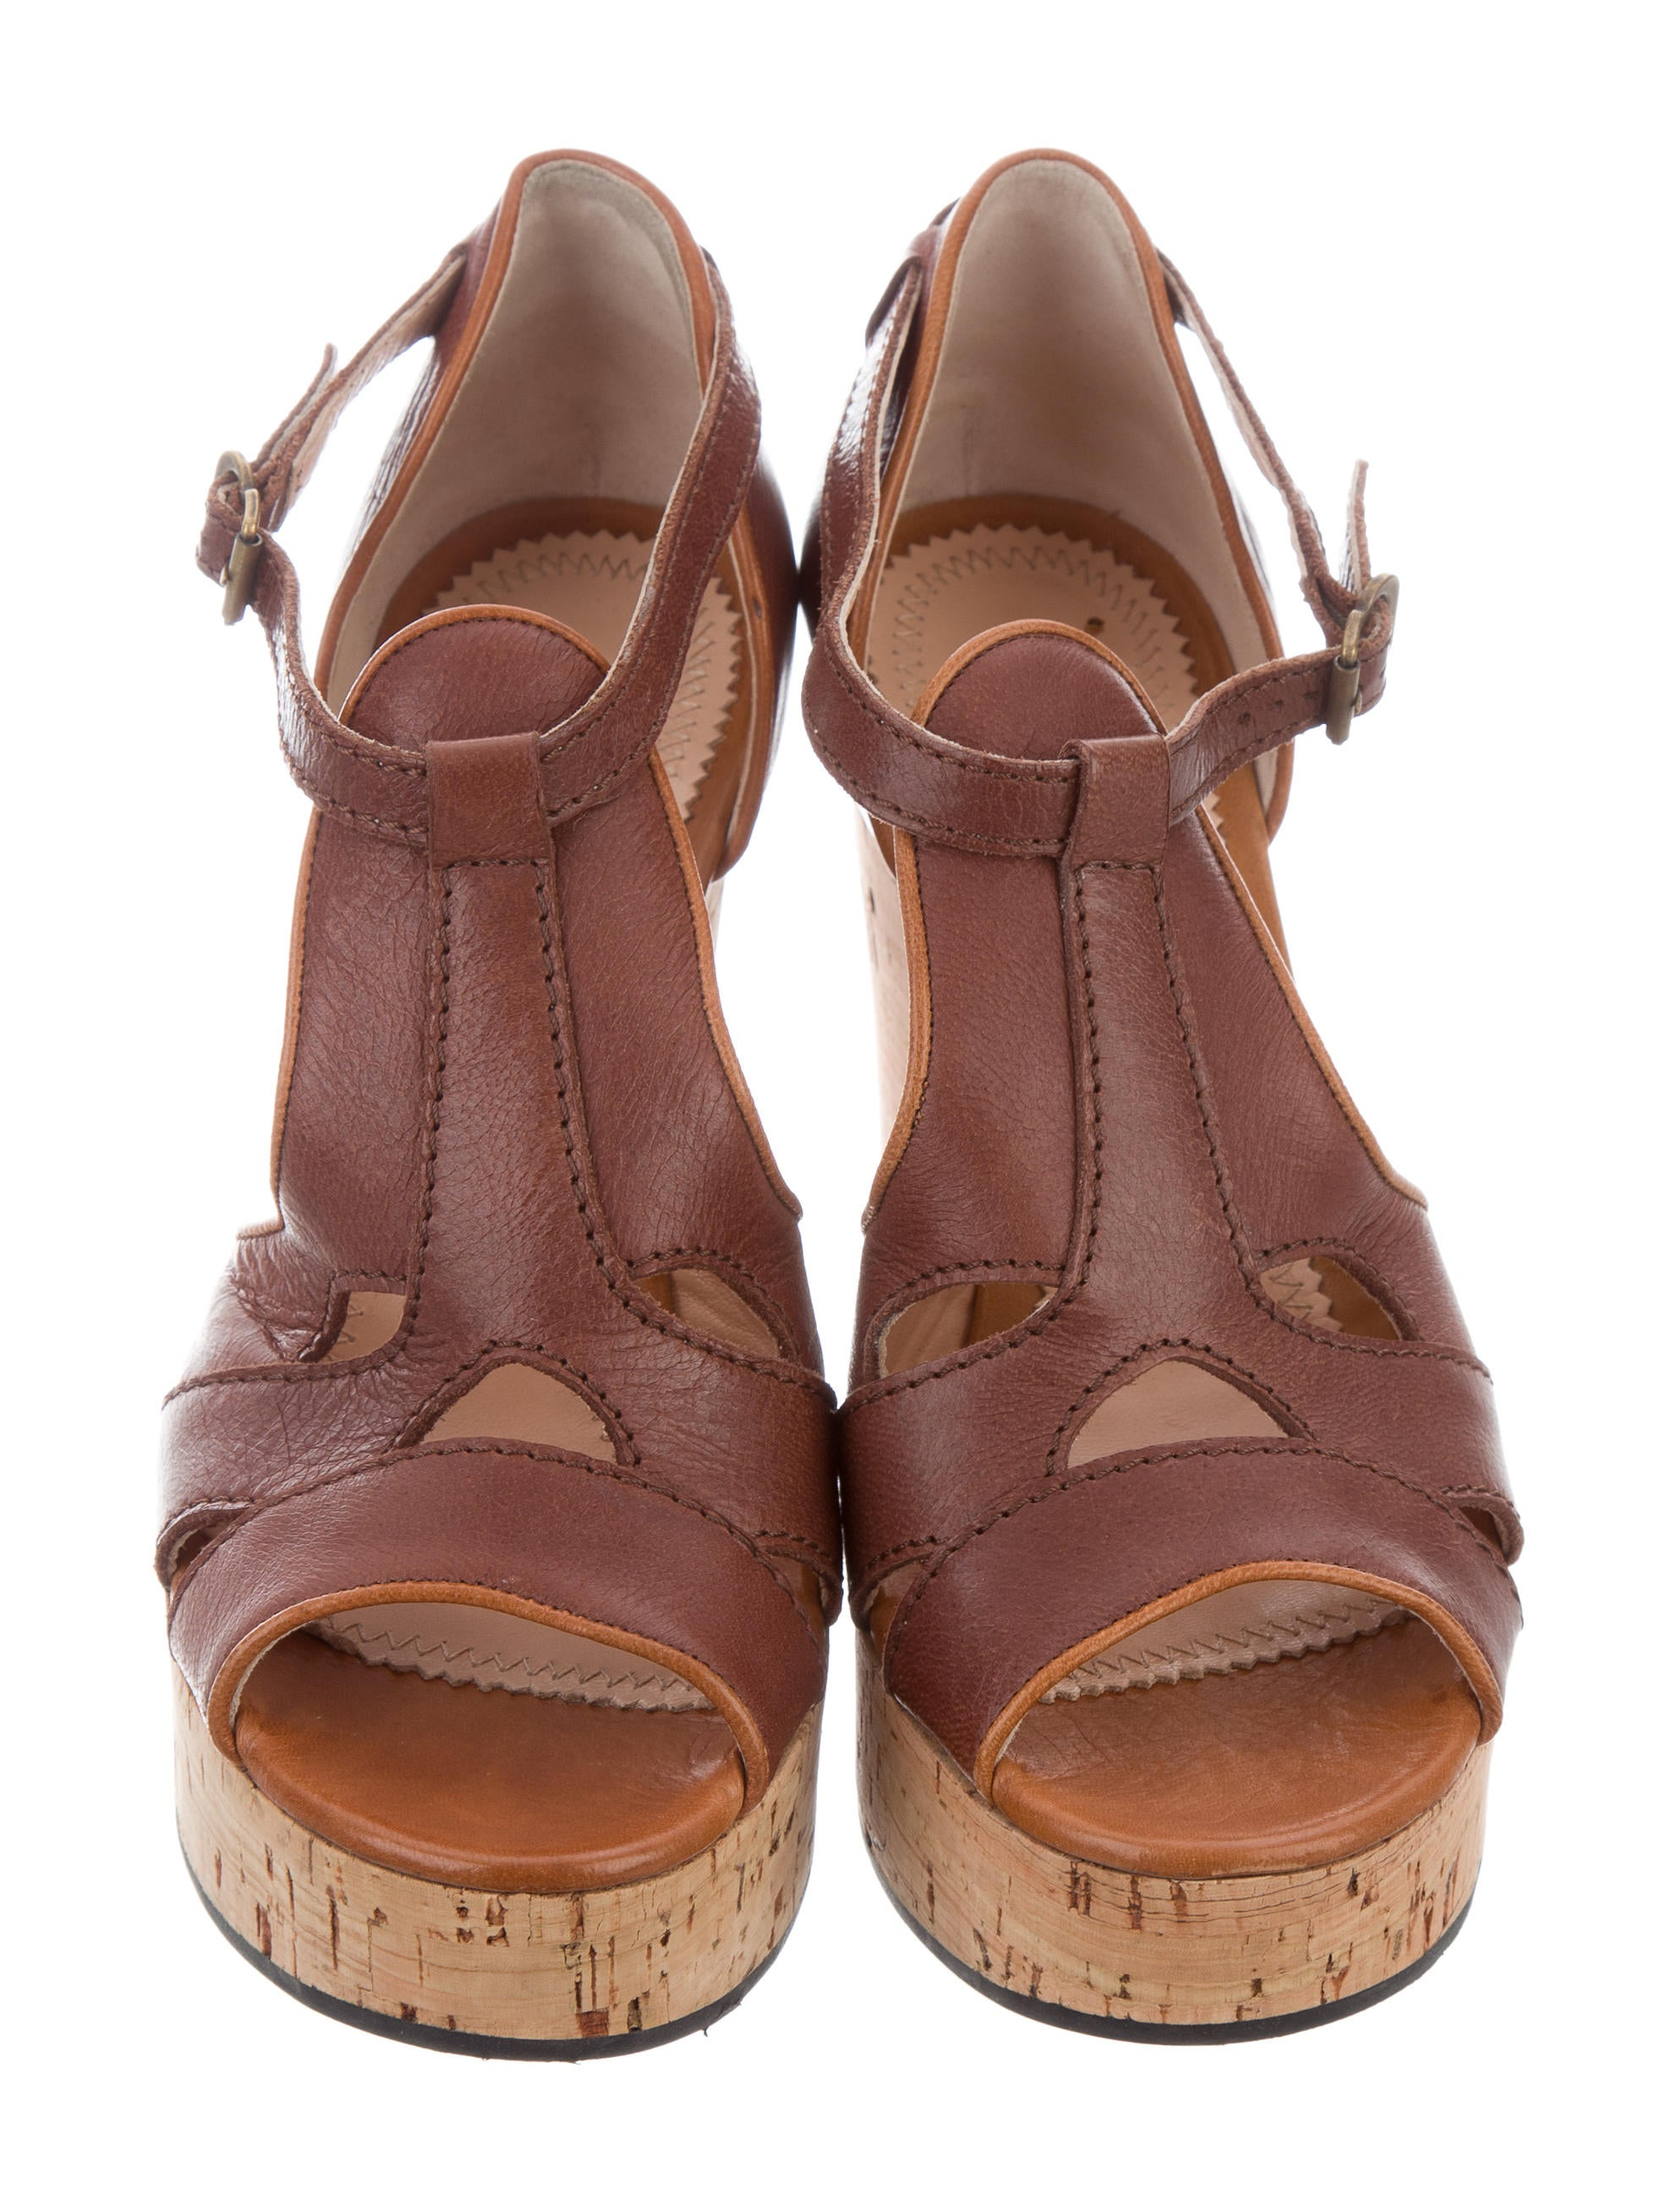 Chlo 233 Cork Platform Wedges Shoes Chl60939 The Realreal